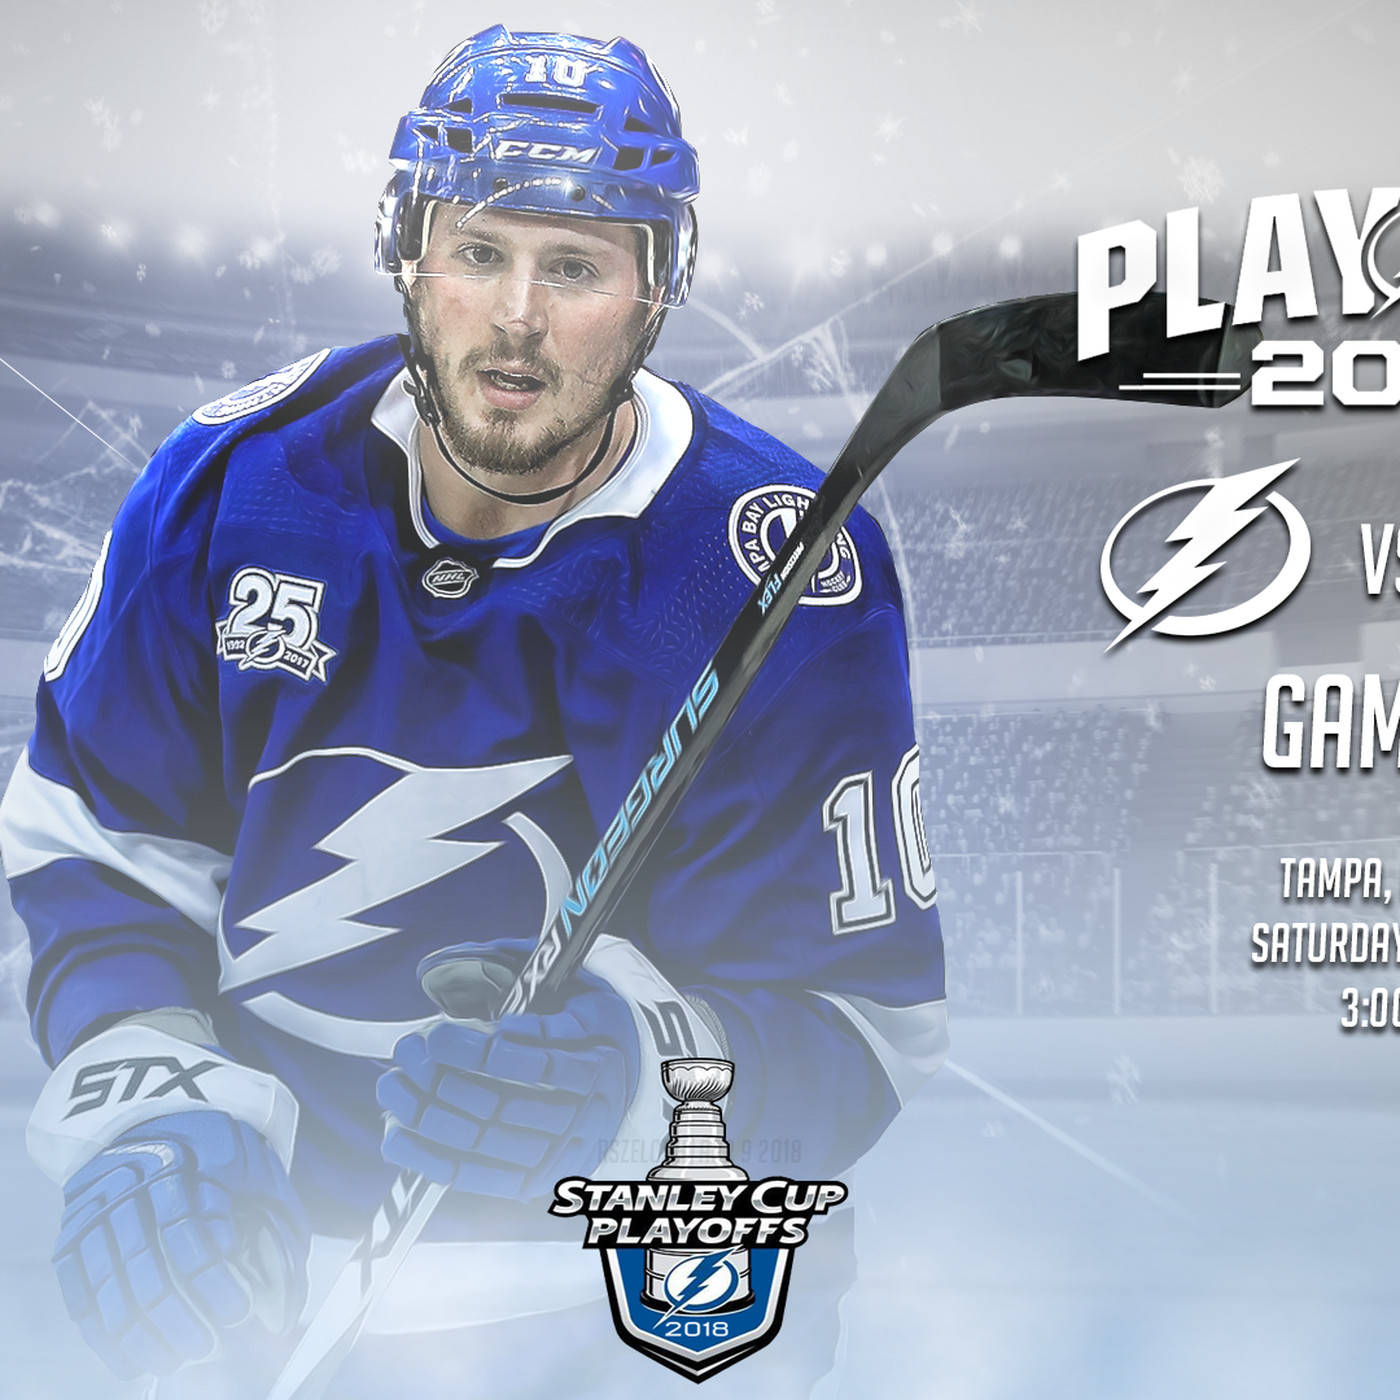 c8b58c9c8 Game day thread and preview  Tampa Bay Lightning at New Jersey Devils